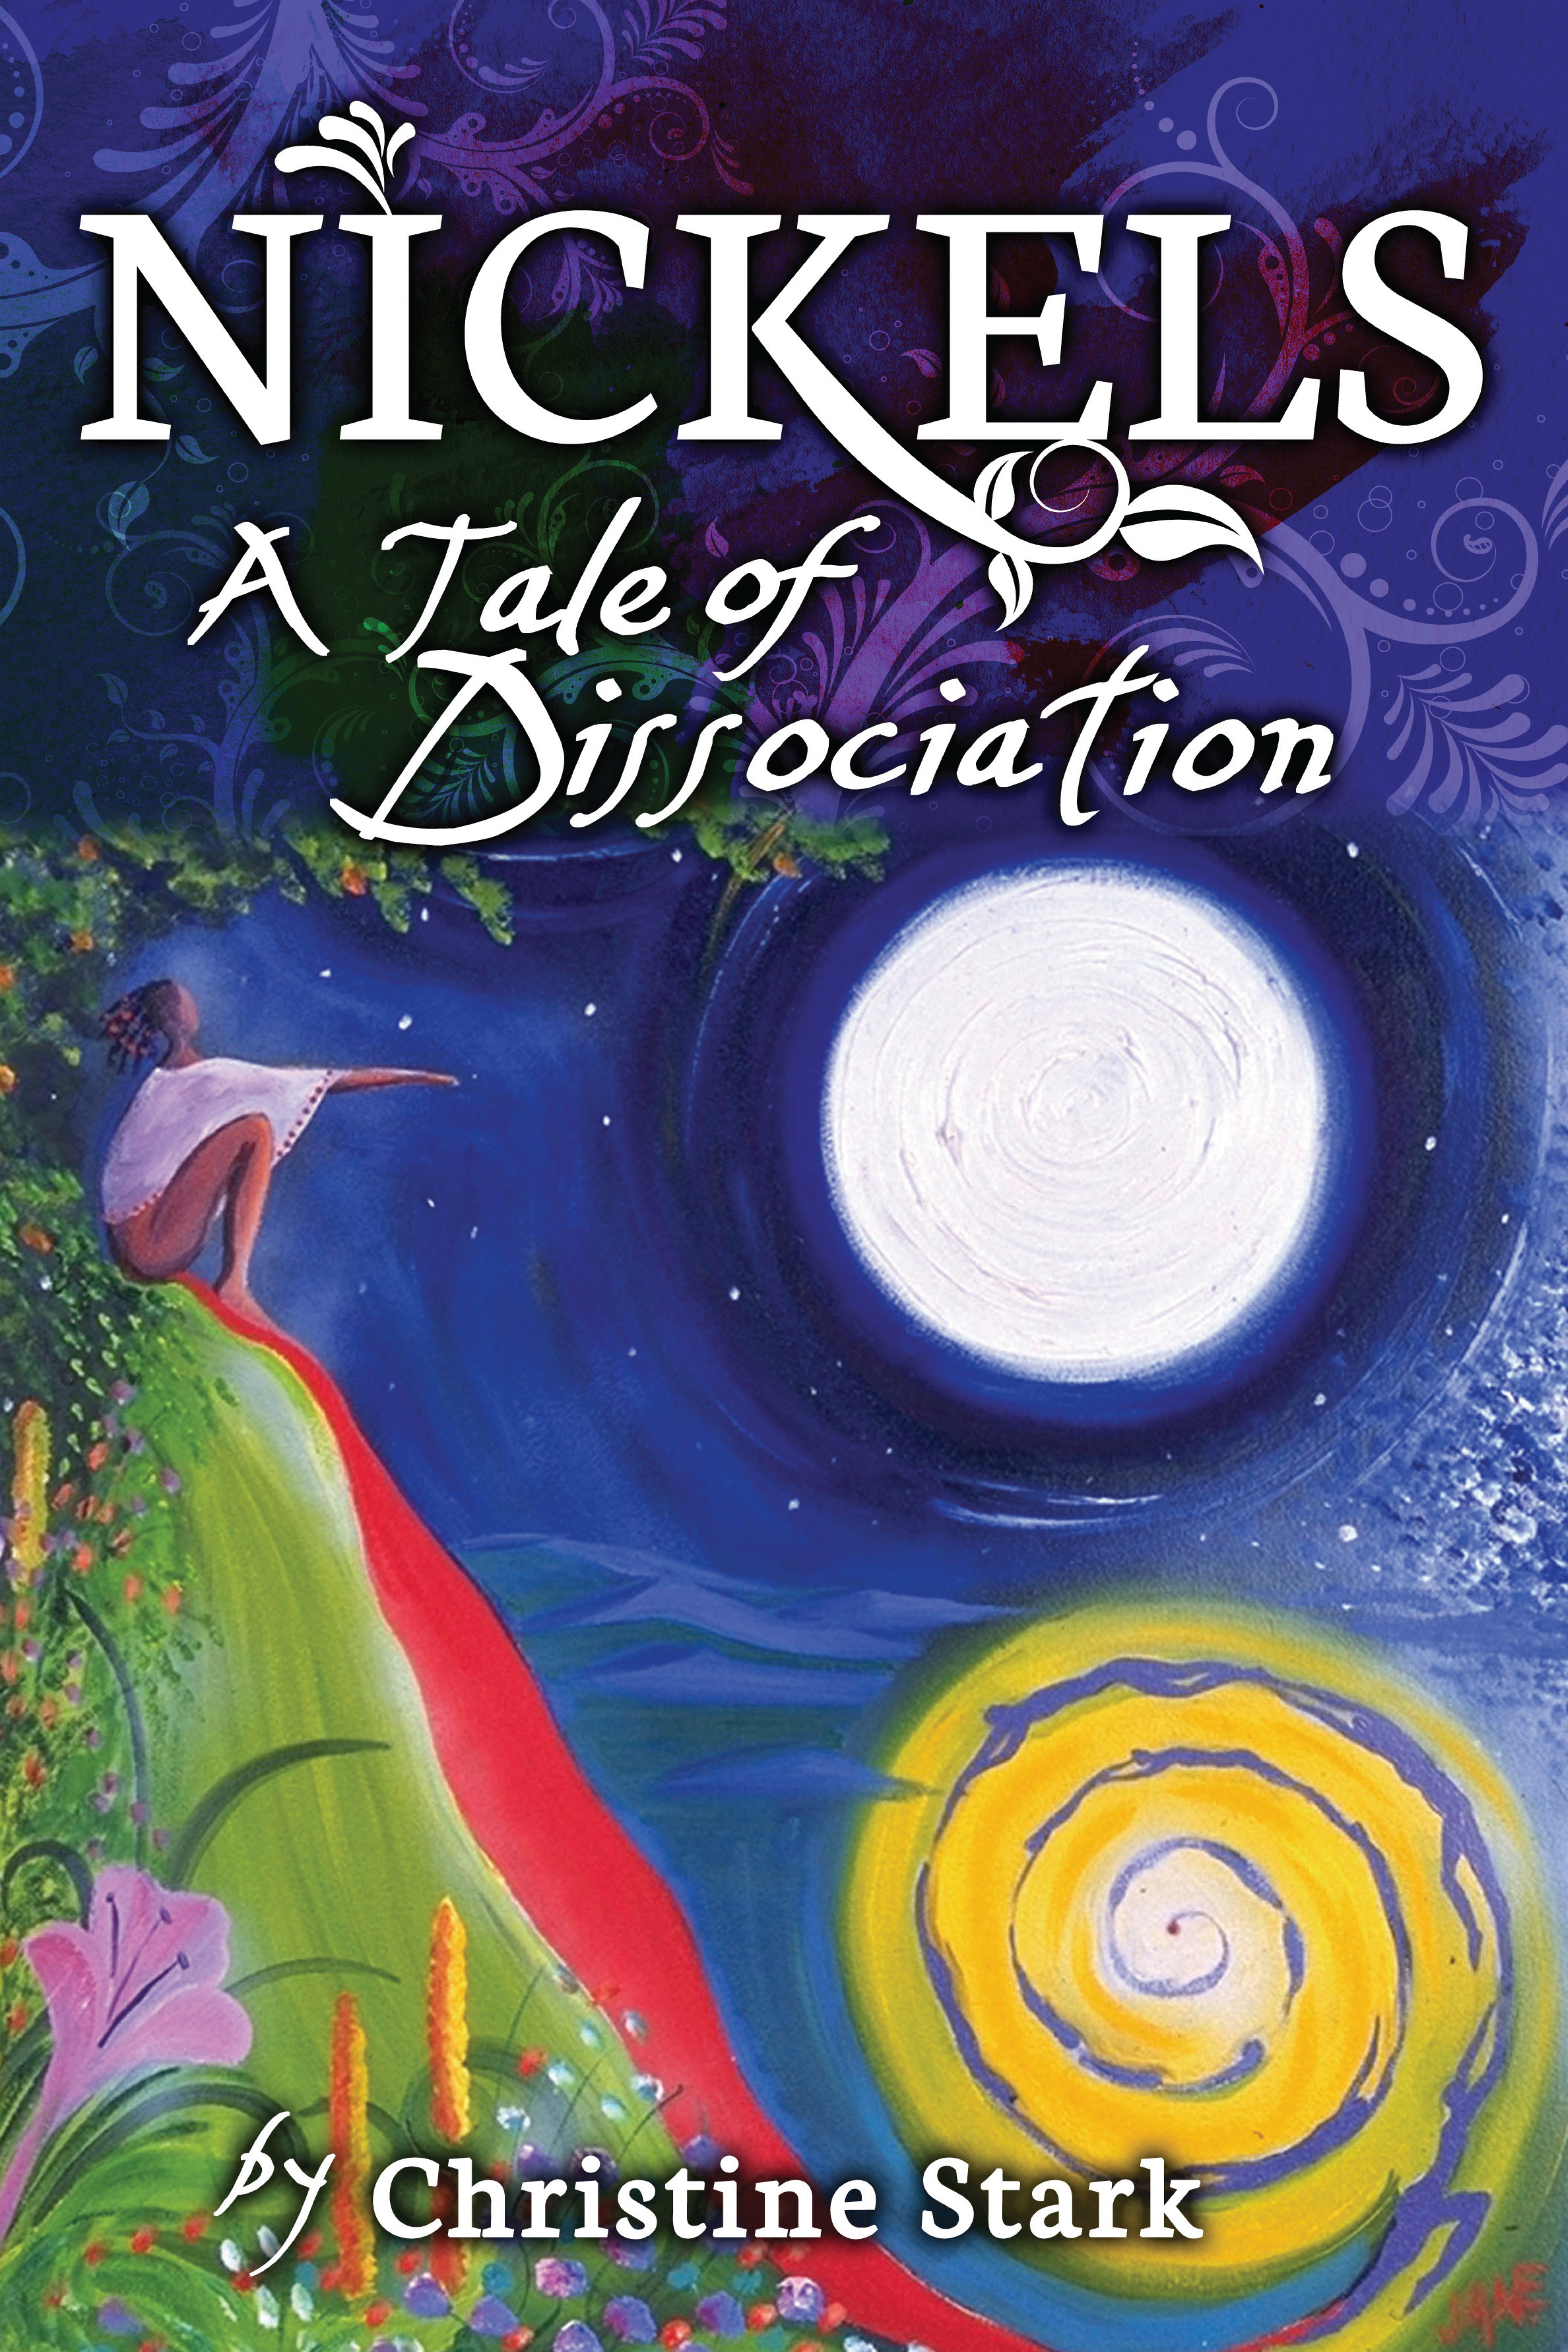 NICKELS: A Tale of Dissociation